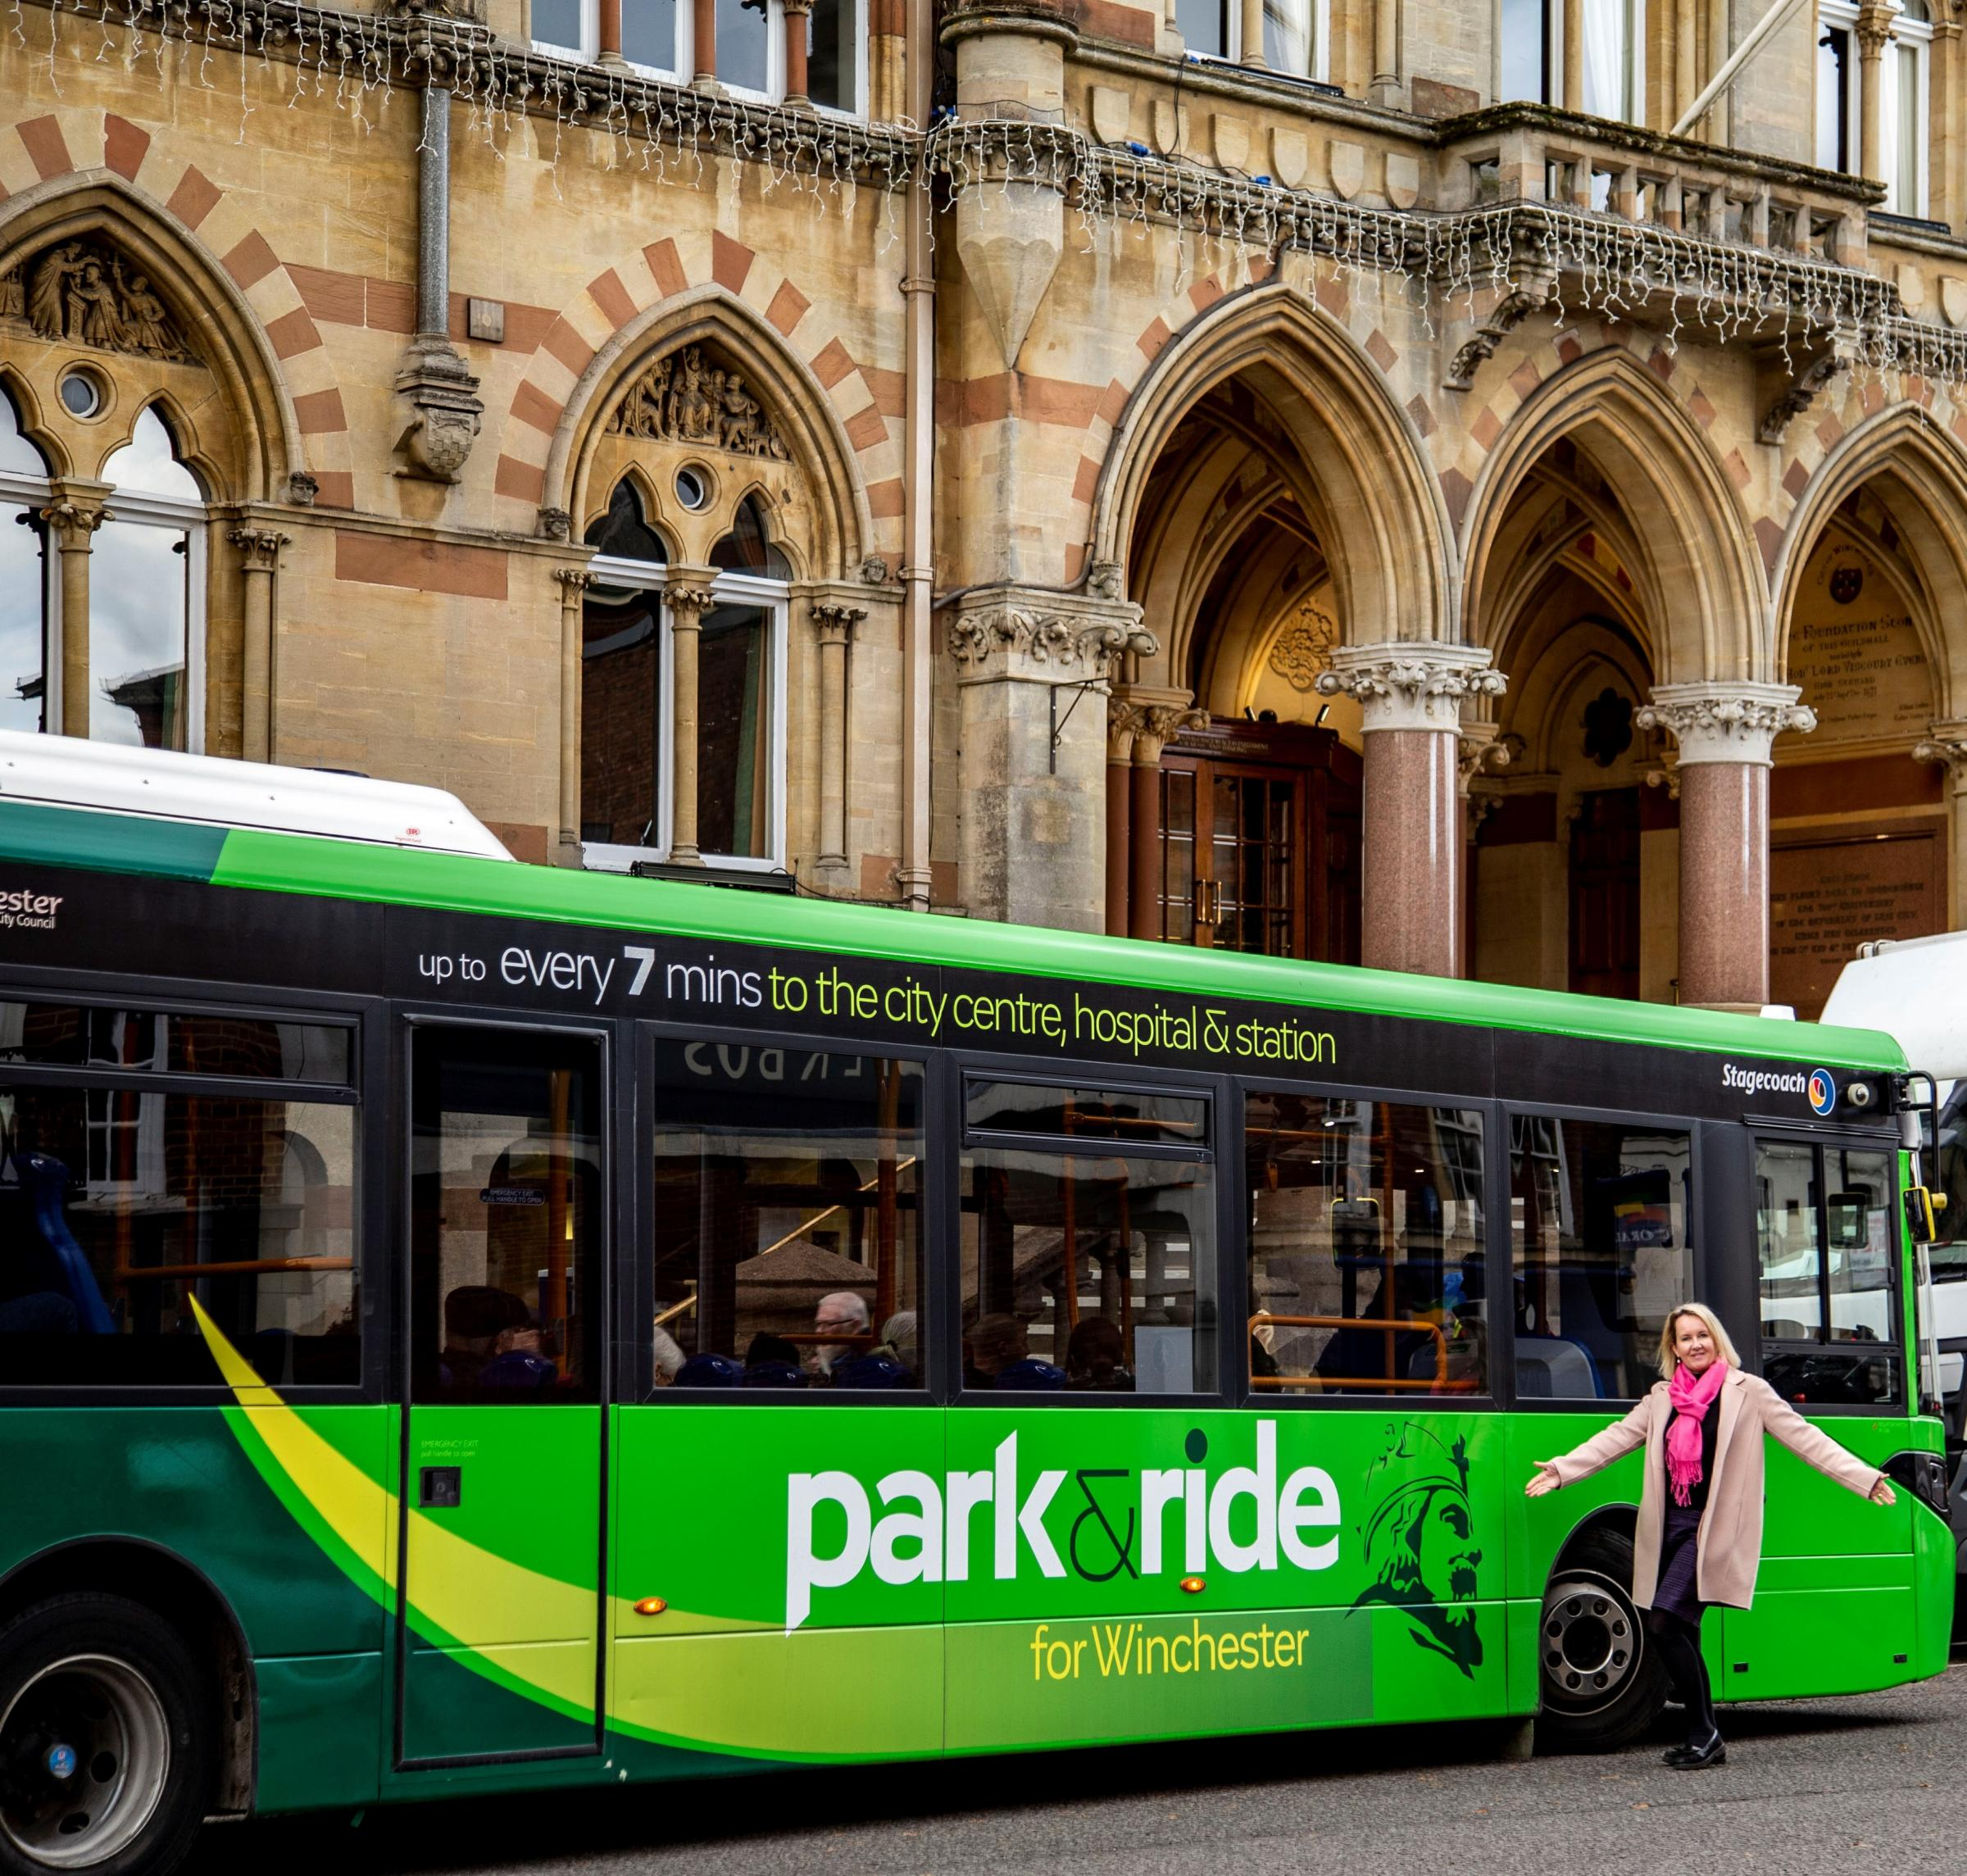 Councillor Warwick and a Park and Ride bus